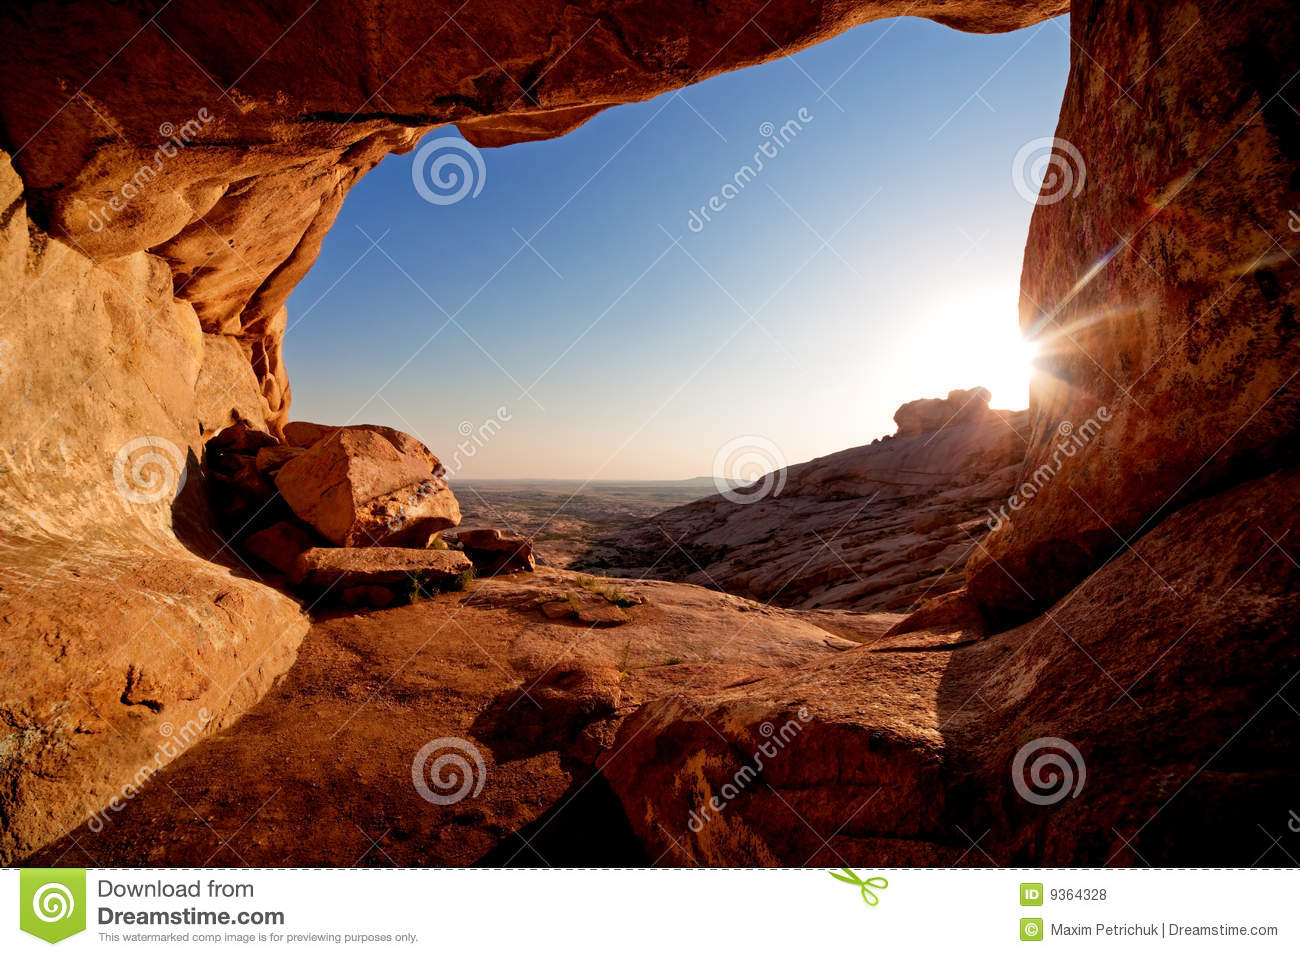 Cave and sunset in the desert mountains